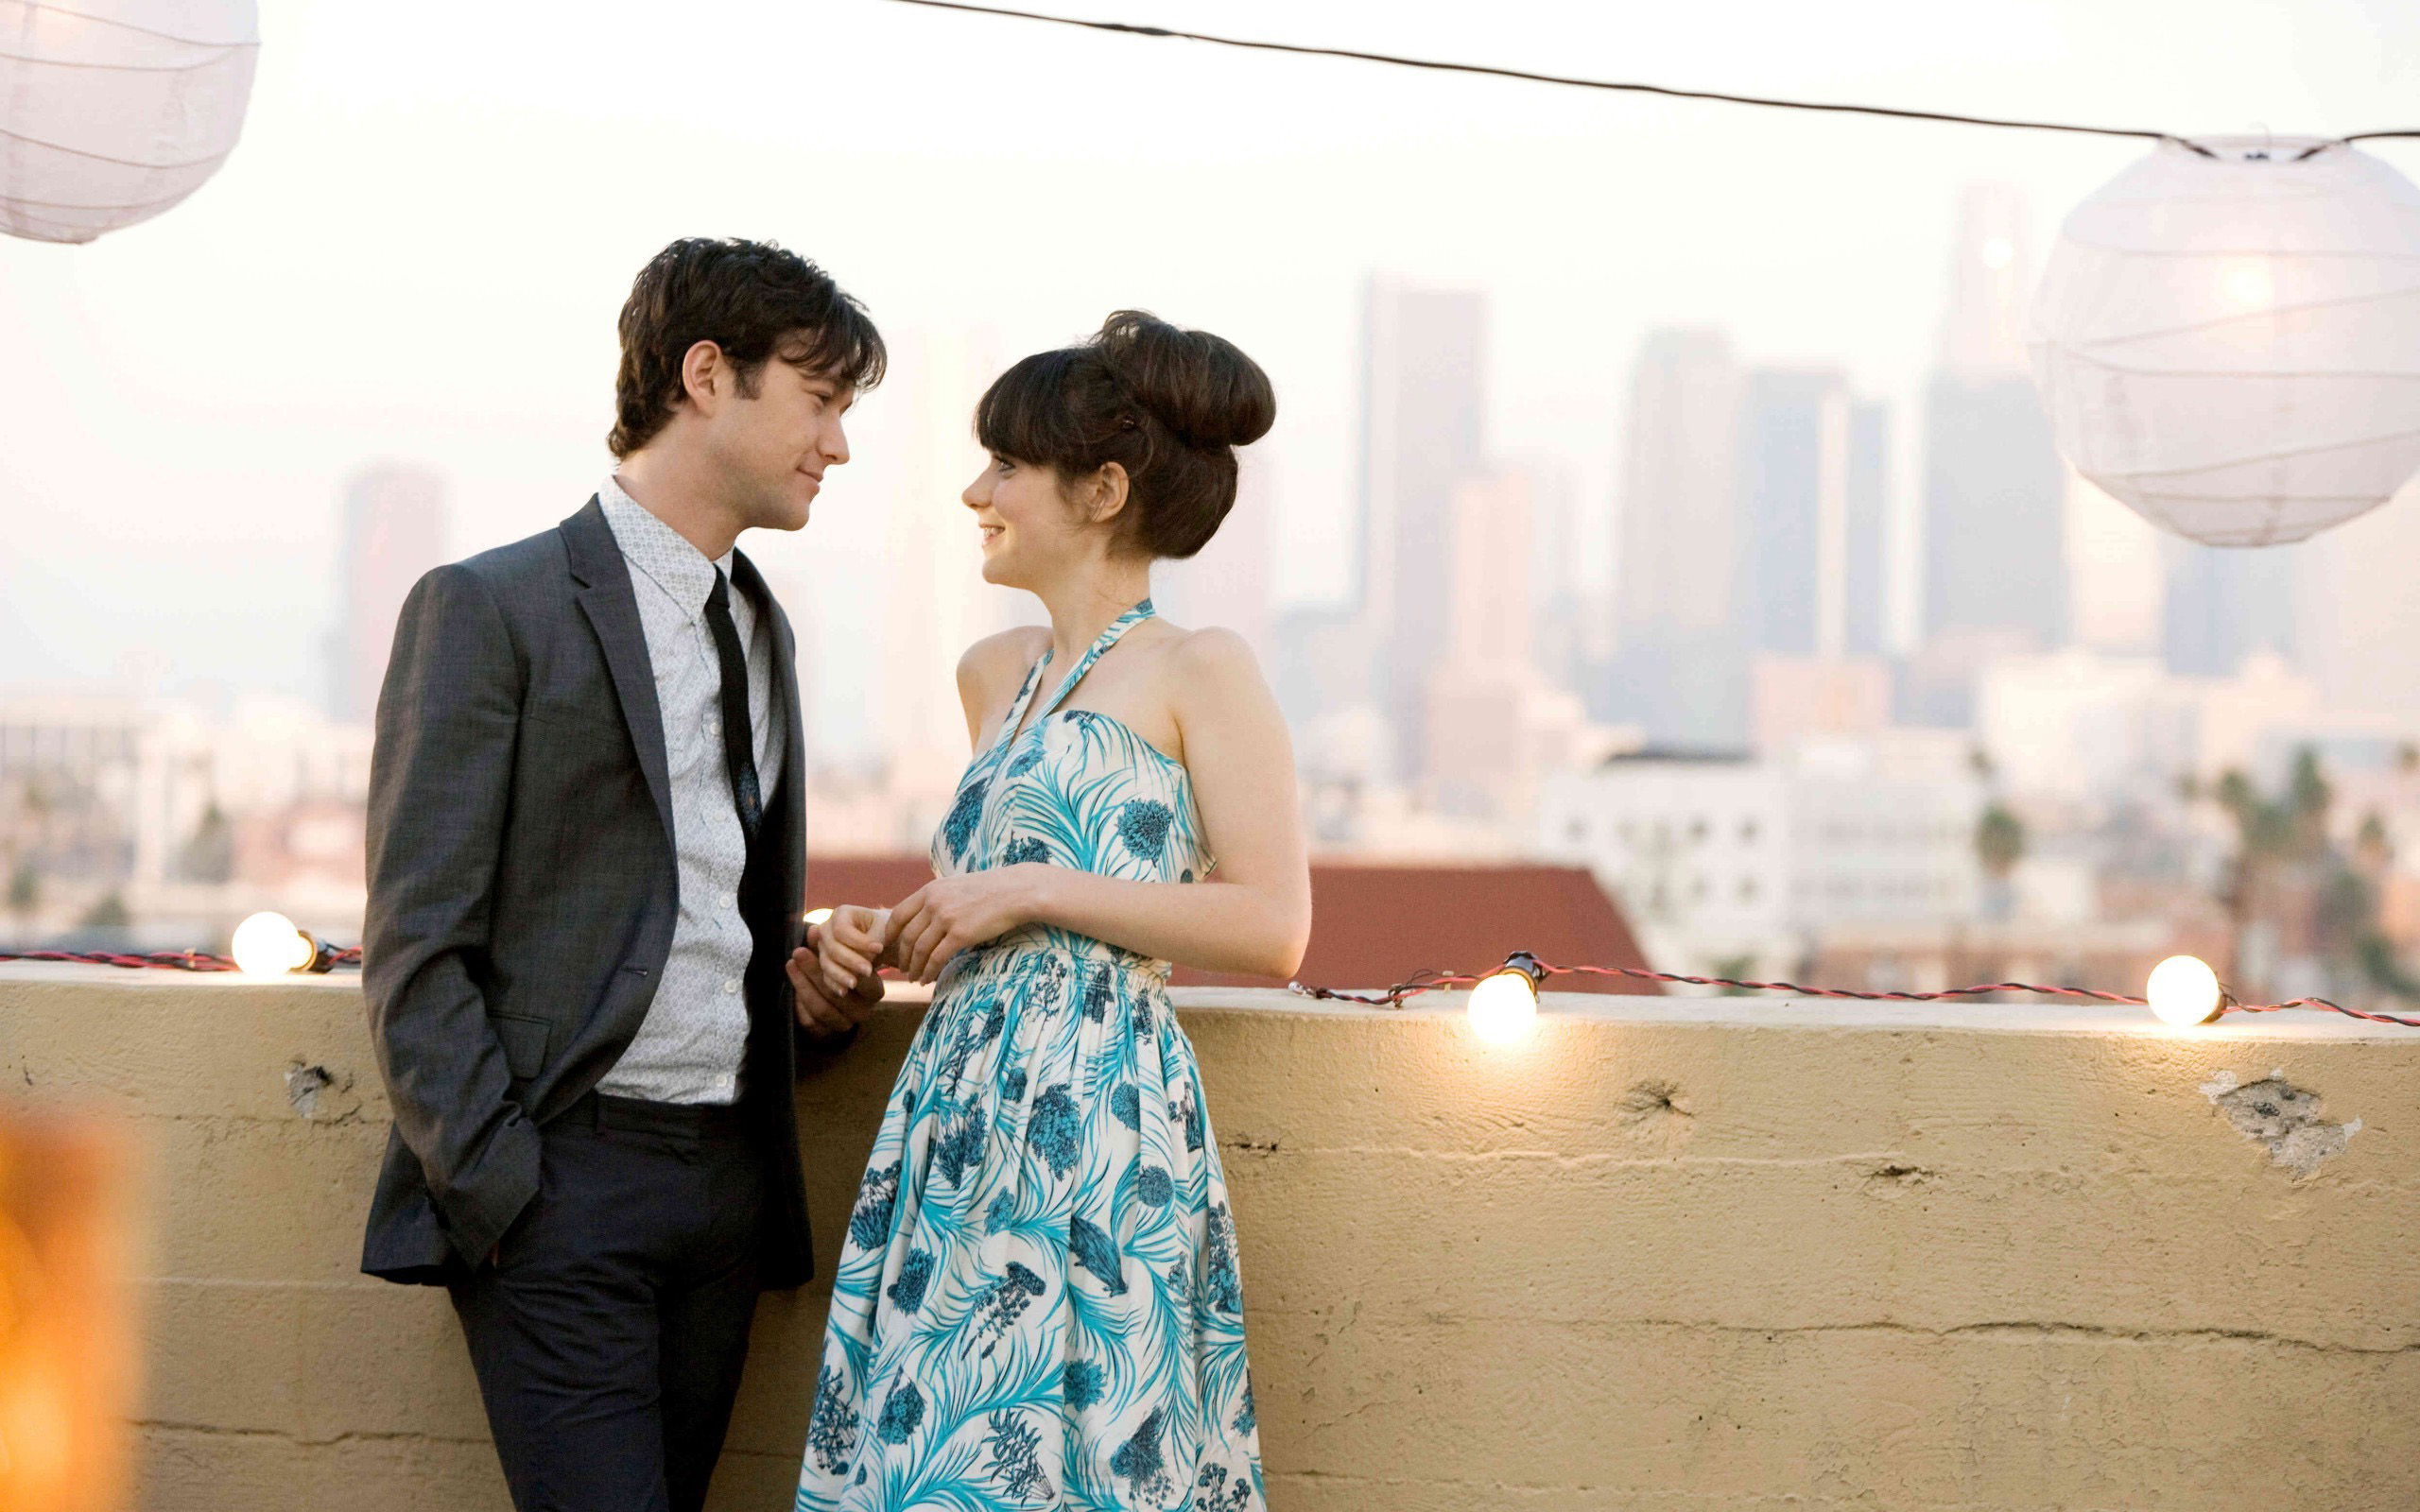 Gordon-Levitt playing Tom Hansen and Zooey Deschanel as Summer Finn.